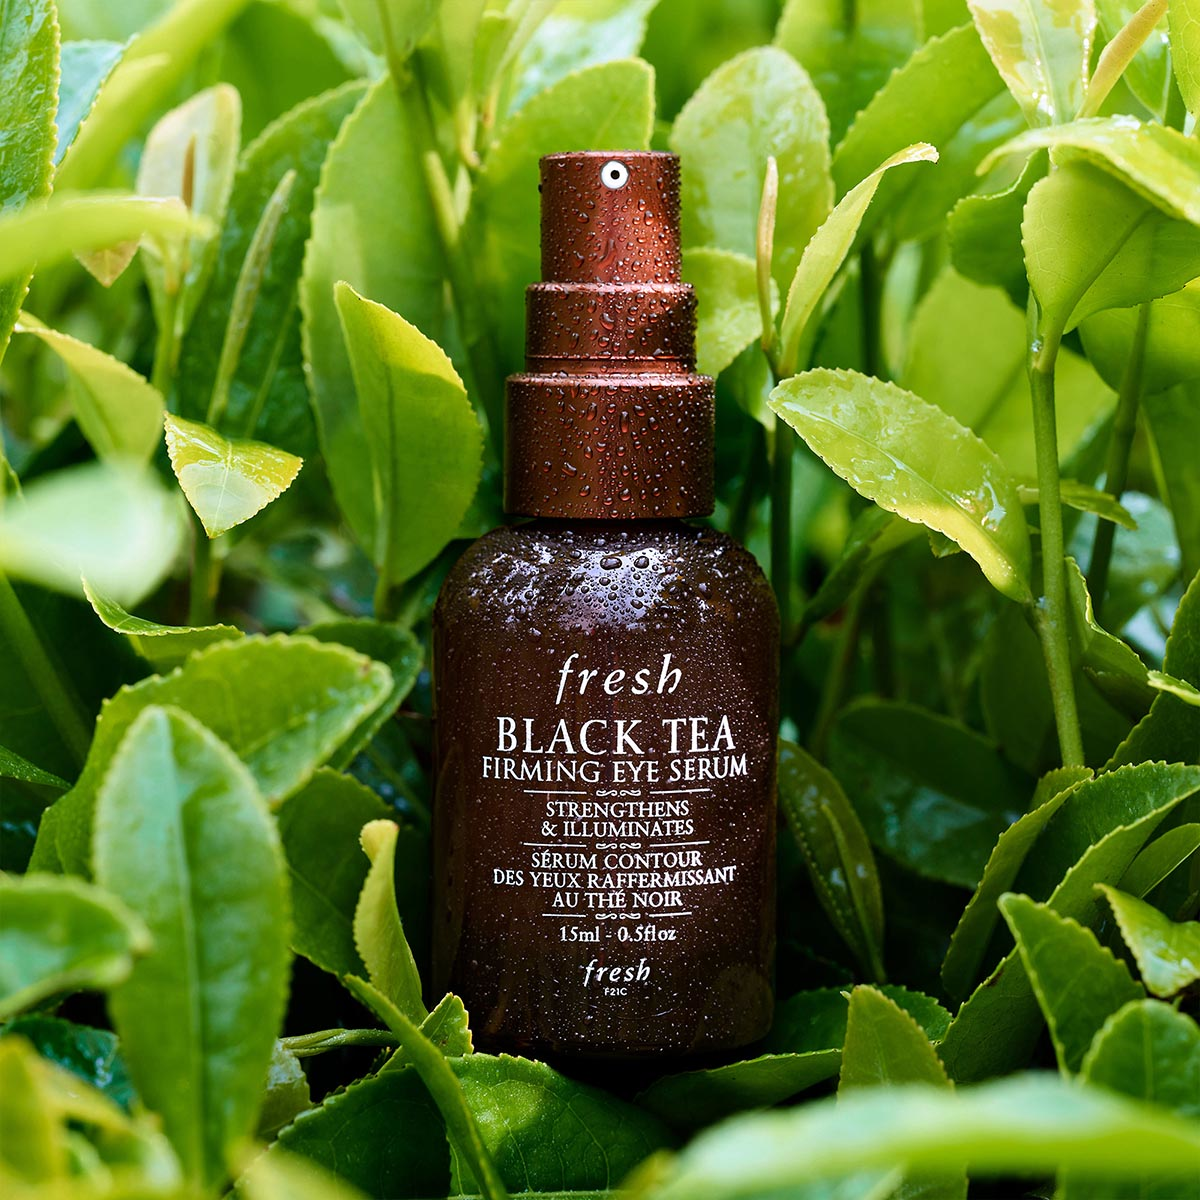 BLACK TEA FIRMING EYE SERUM 15ML